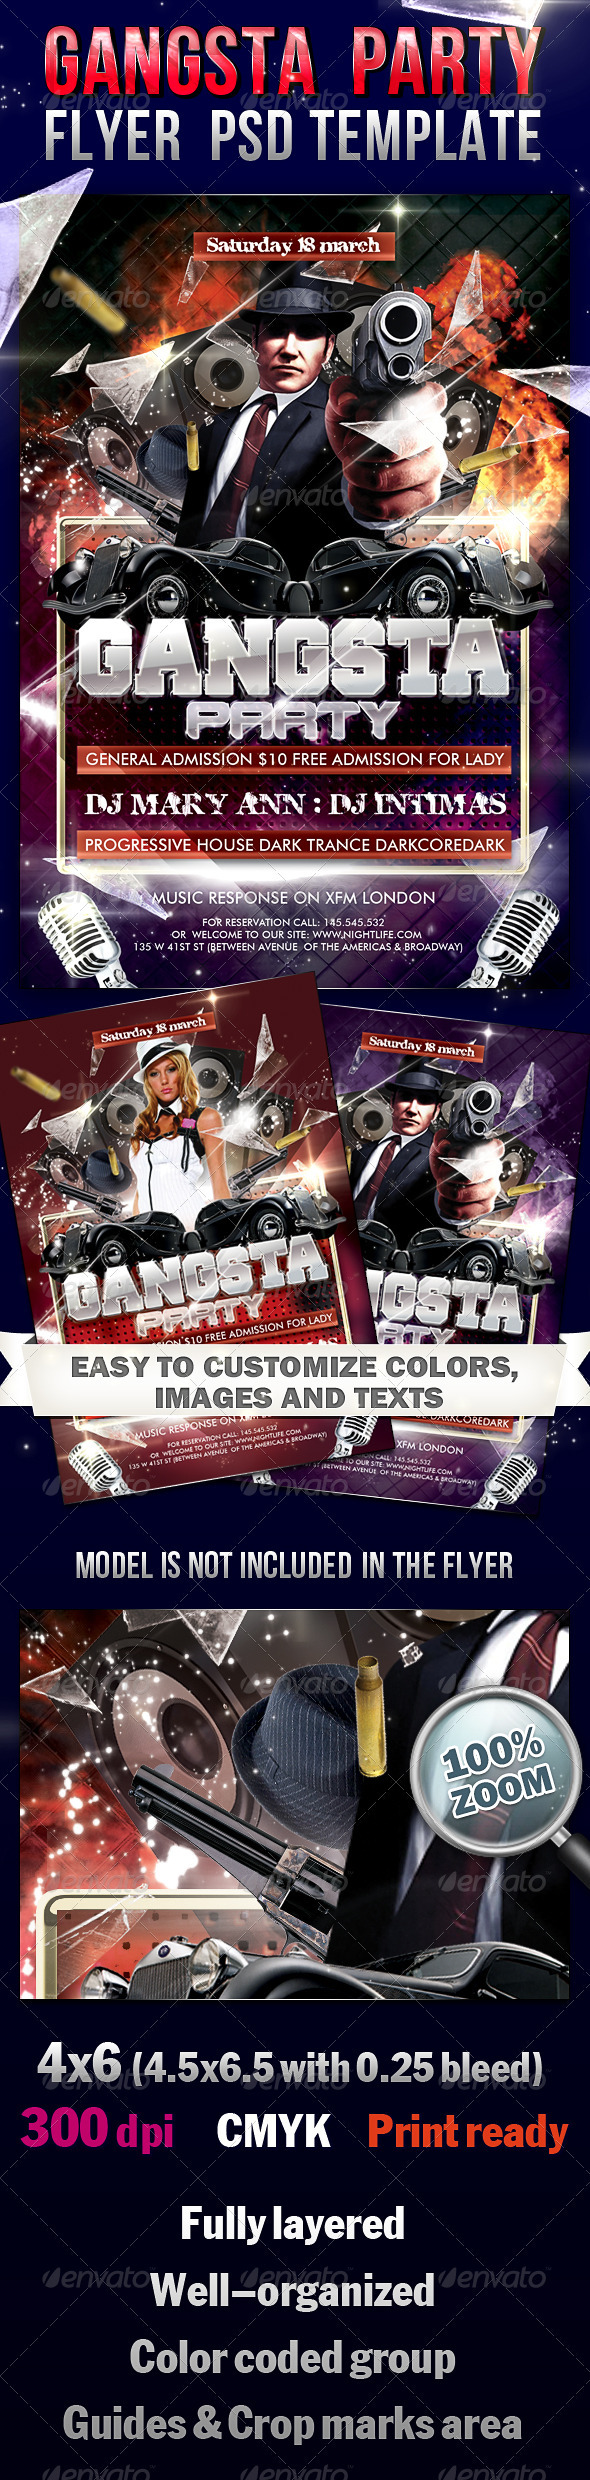 GraphicRiver Gangsta Party Flyer PSD Template 2249015